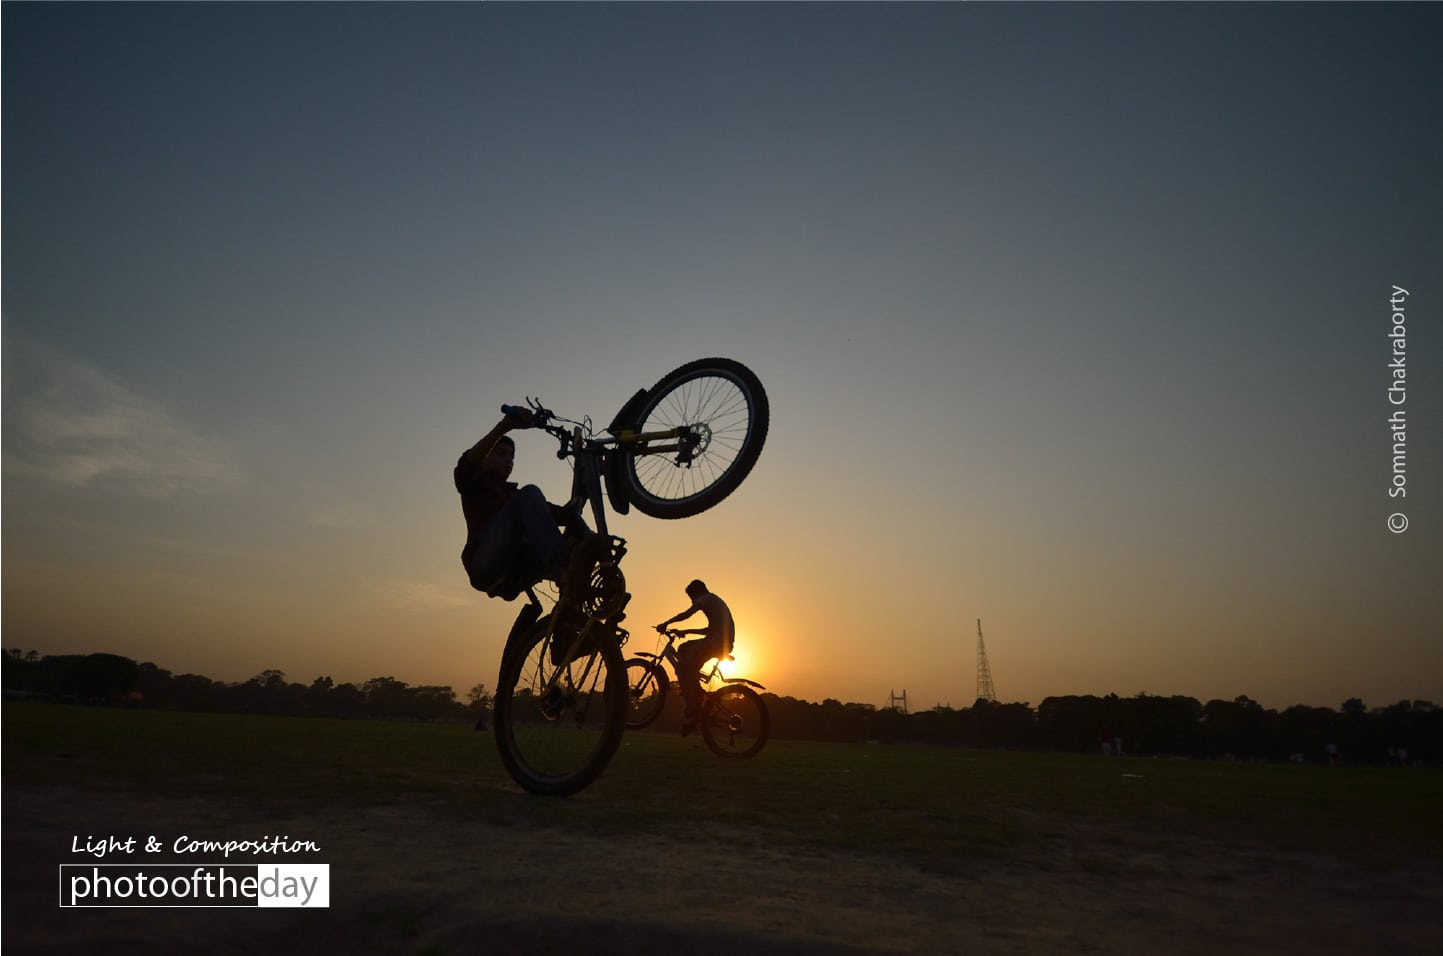 Dual Take off to 90, by Somnath Chakraborty